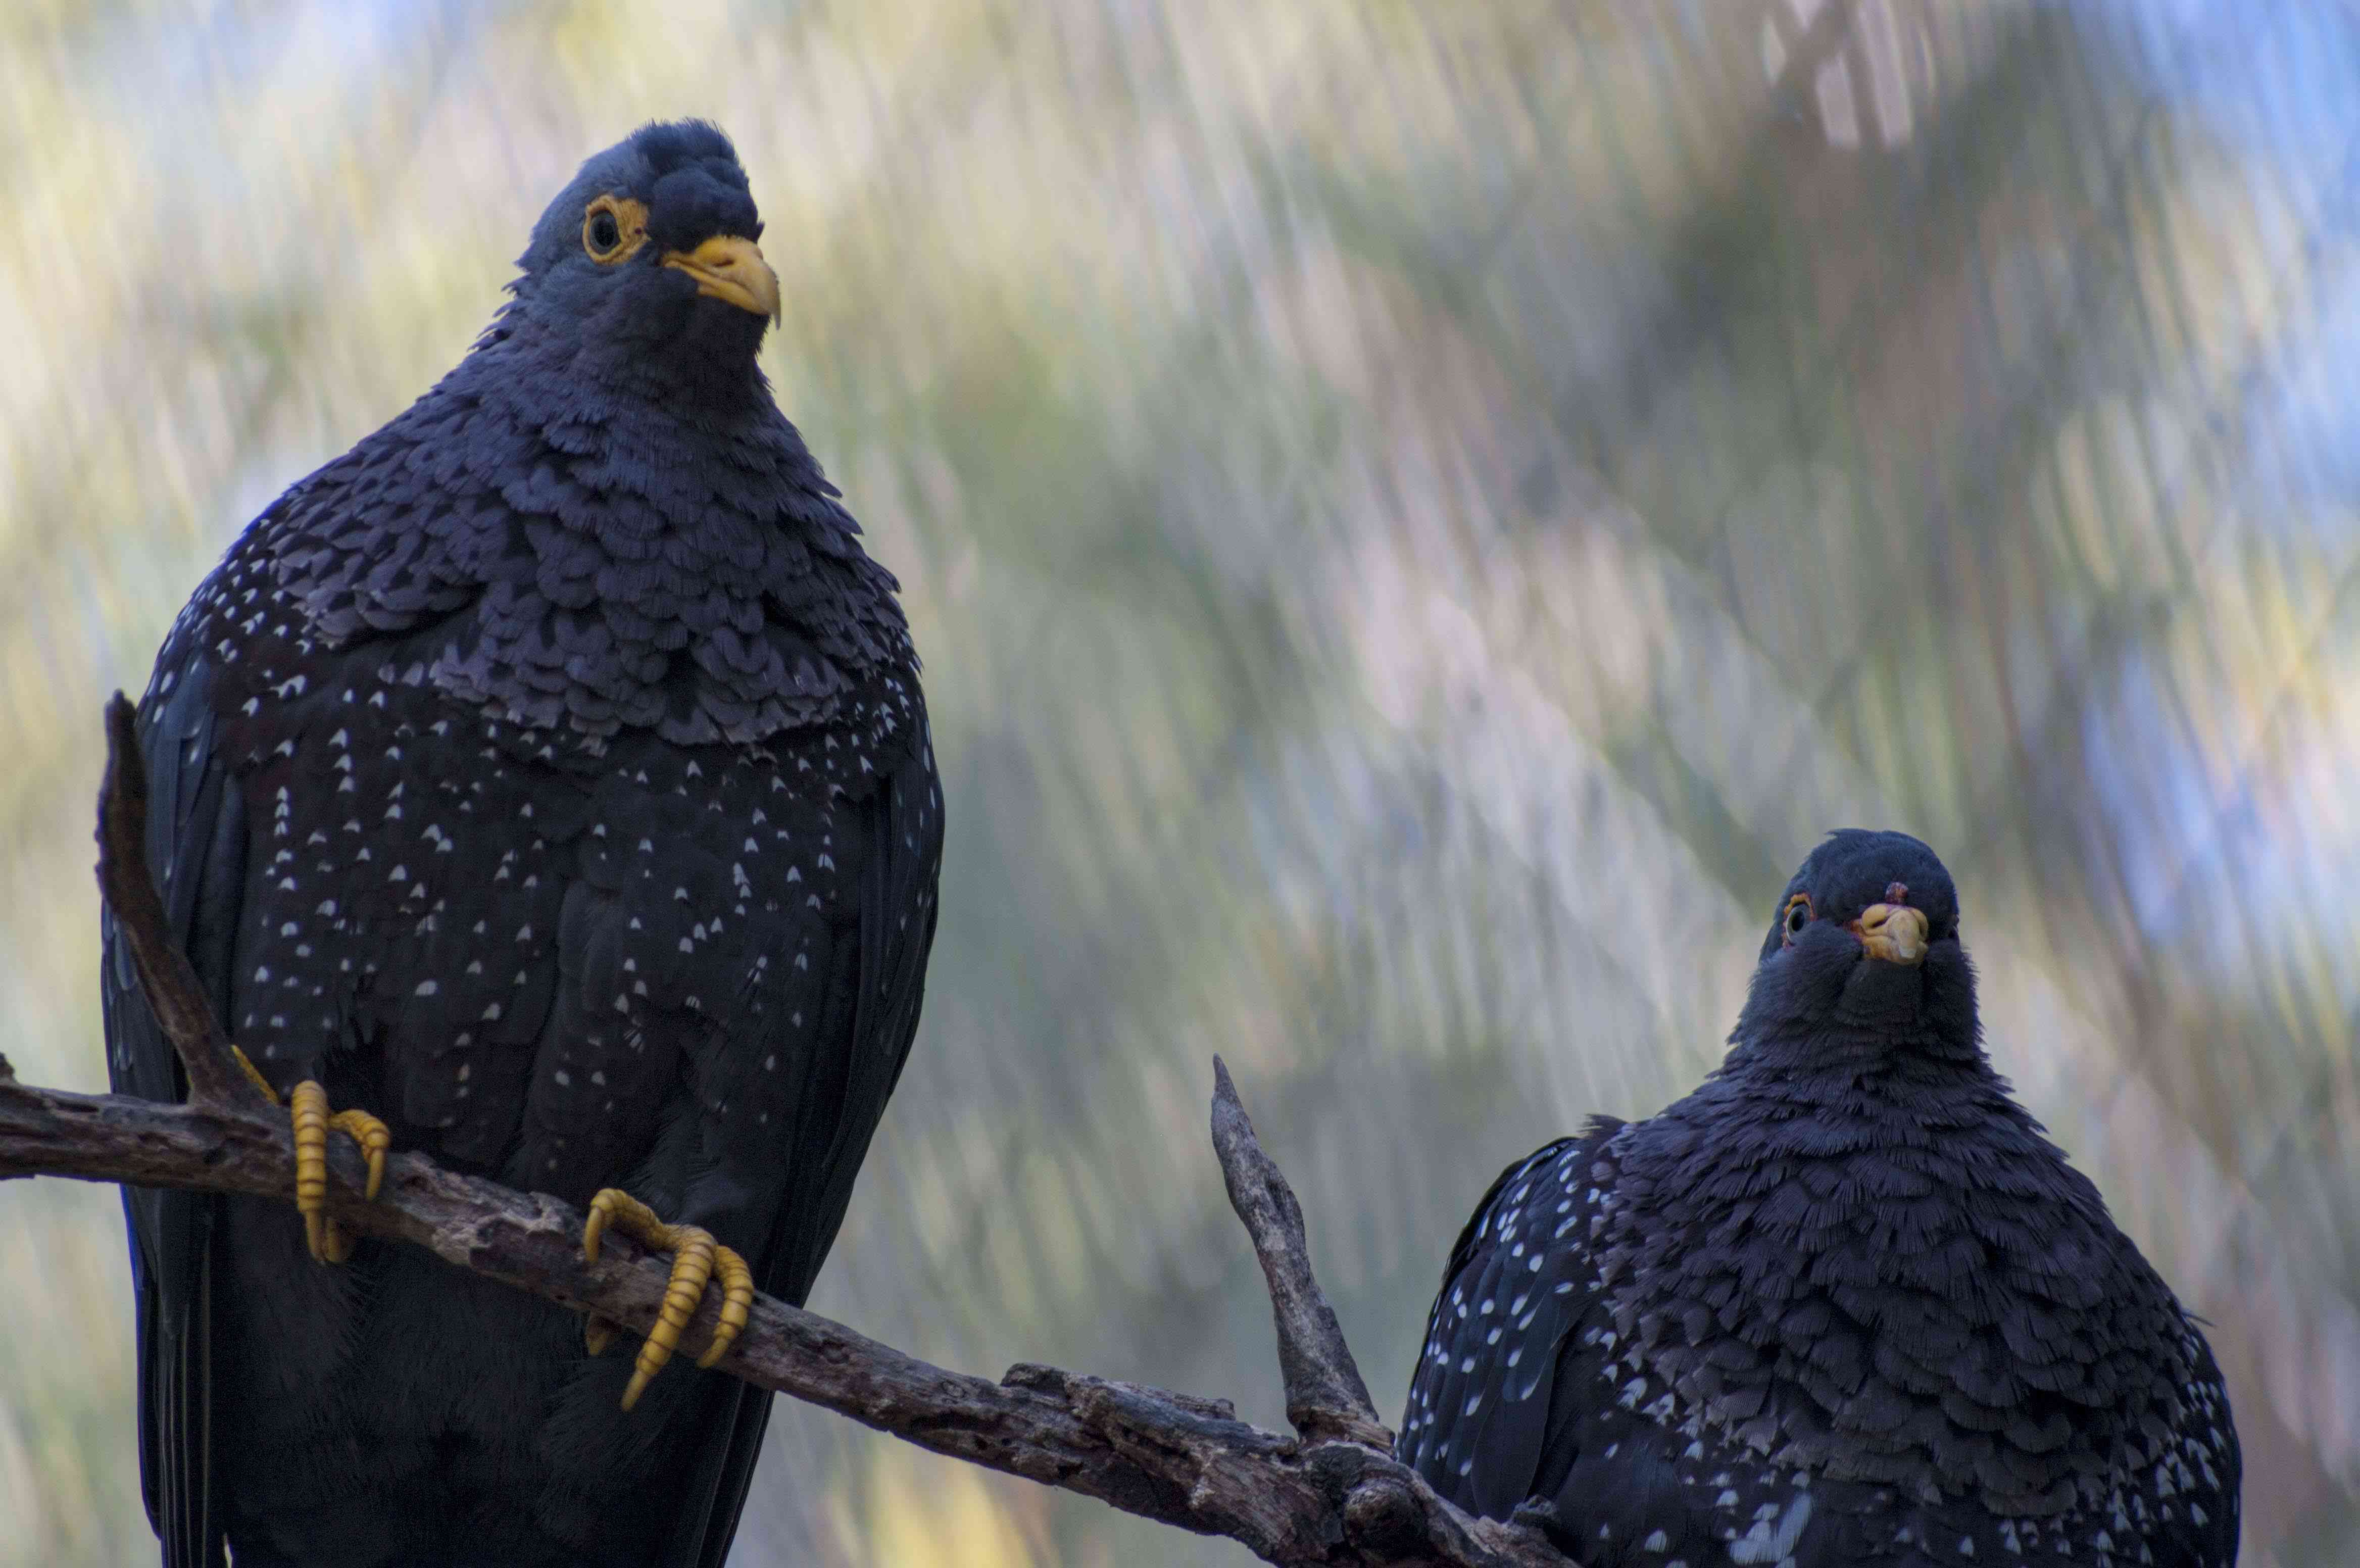 Exotic Birds at the San Diego Zoo